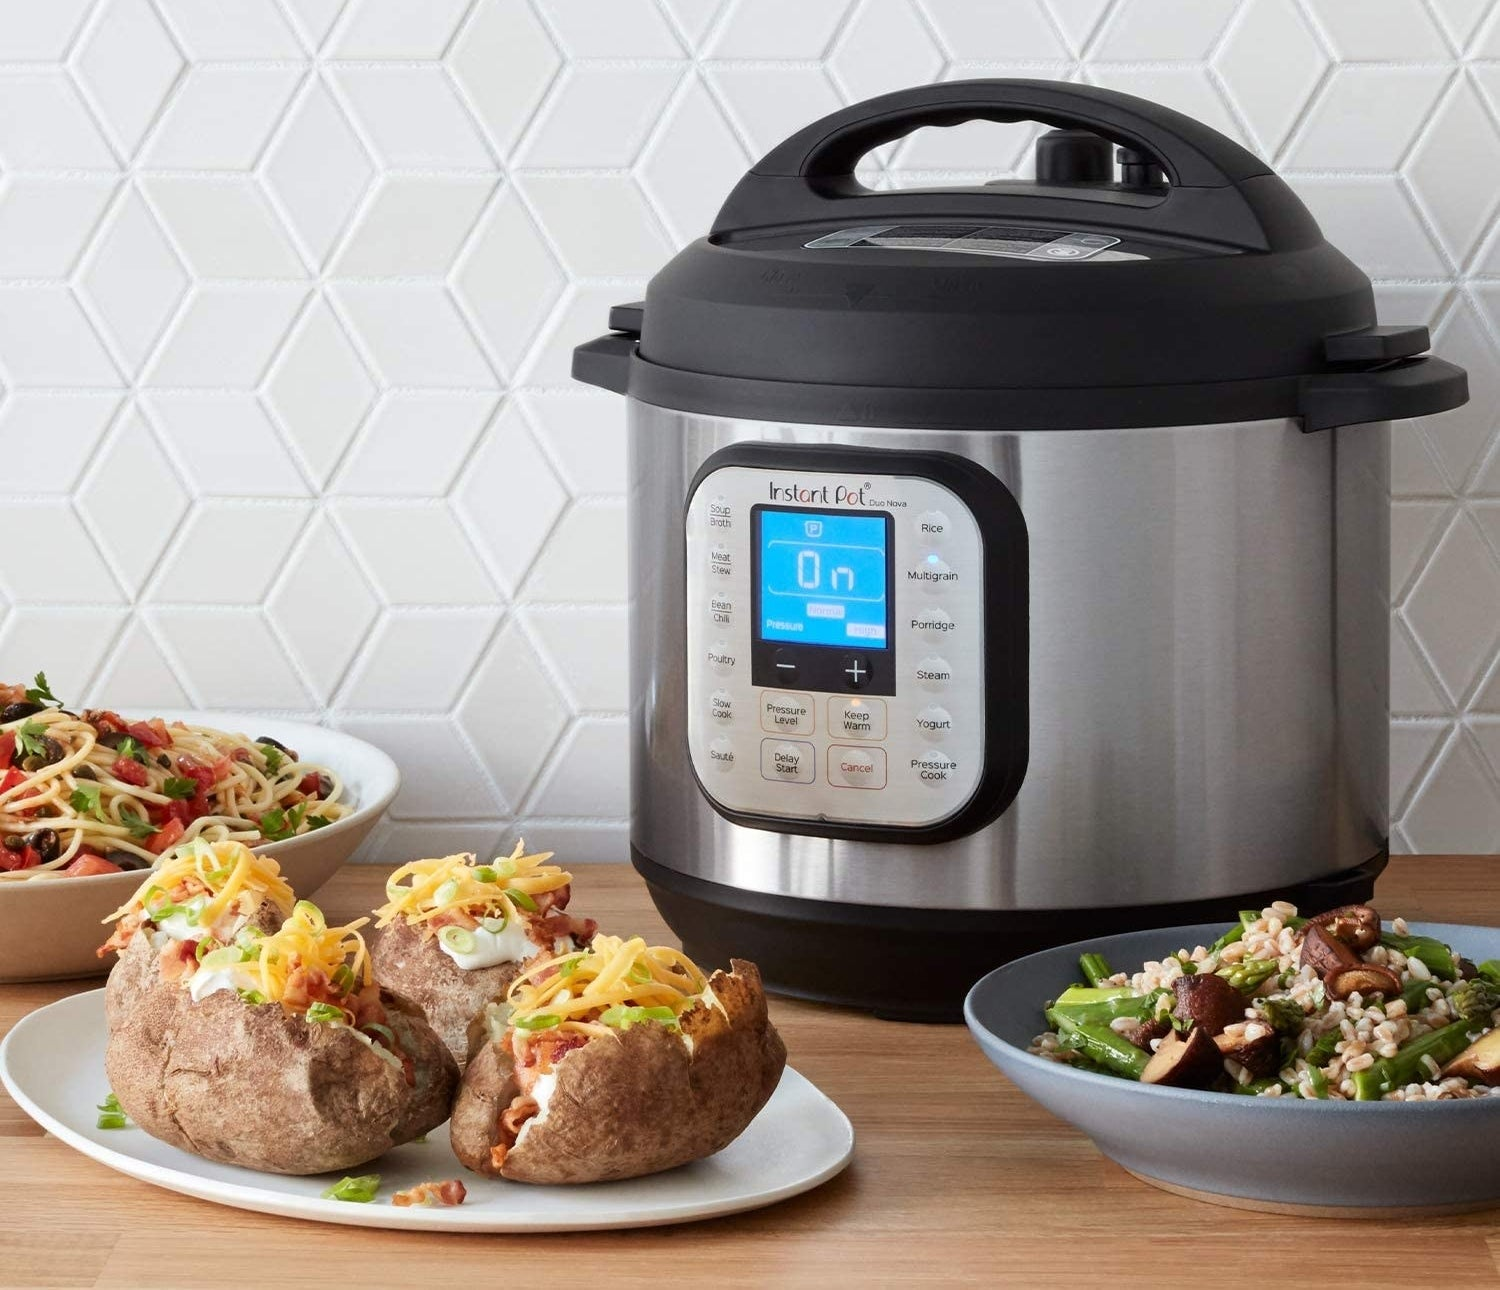 the instant pot duo surrounded by plates of food